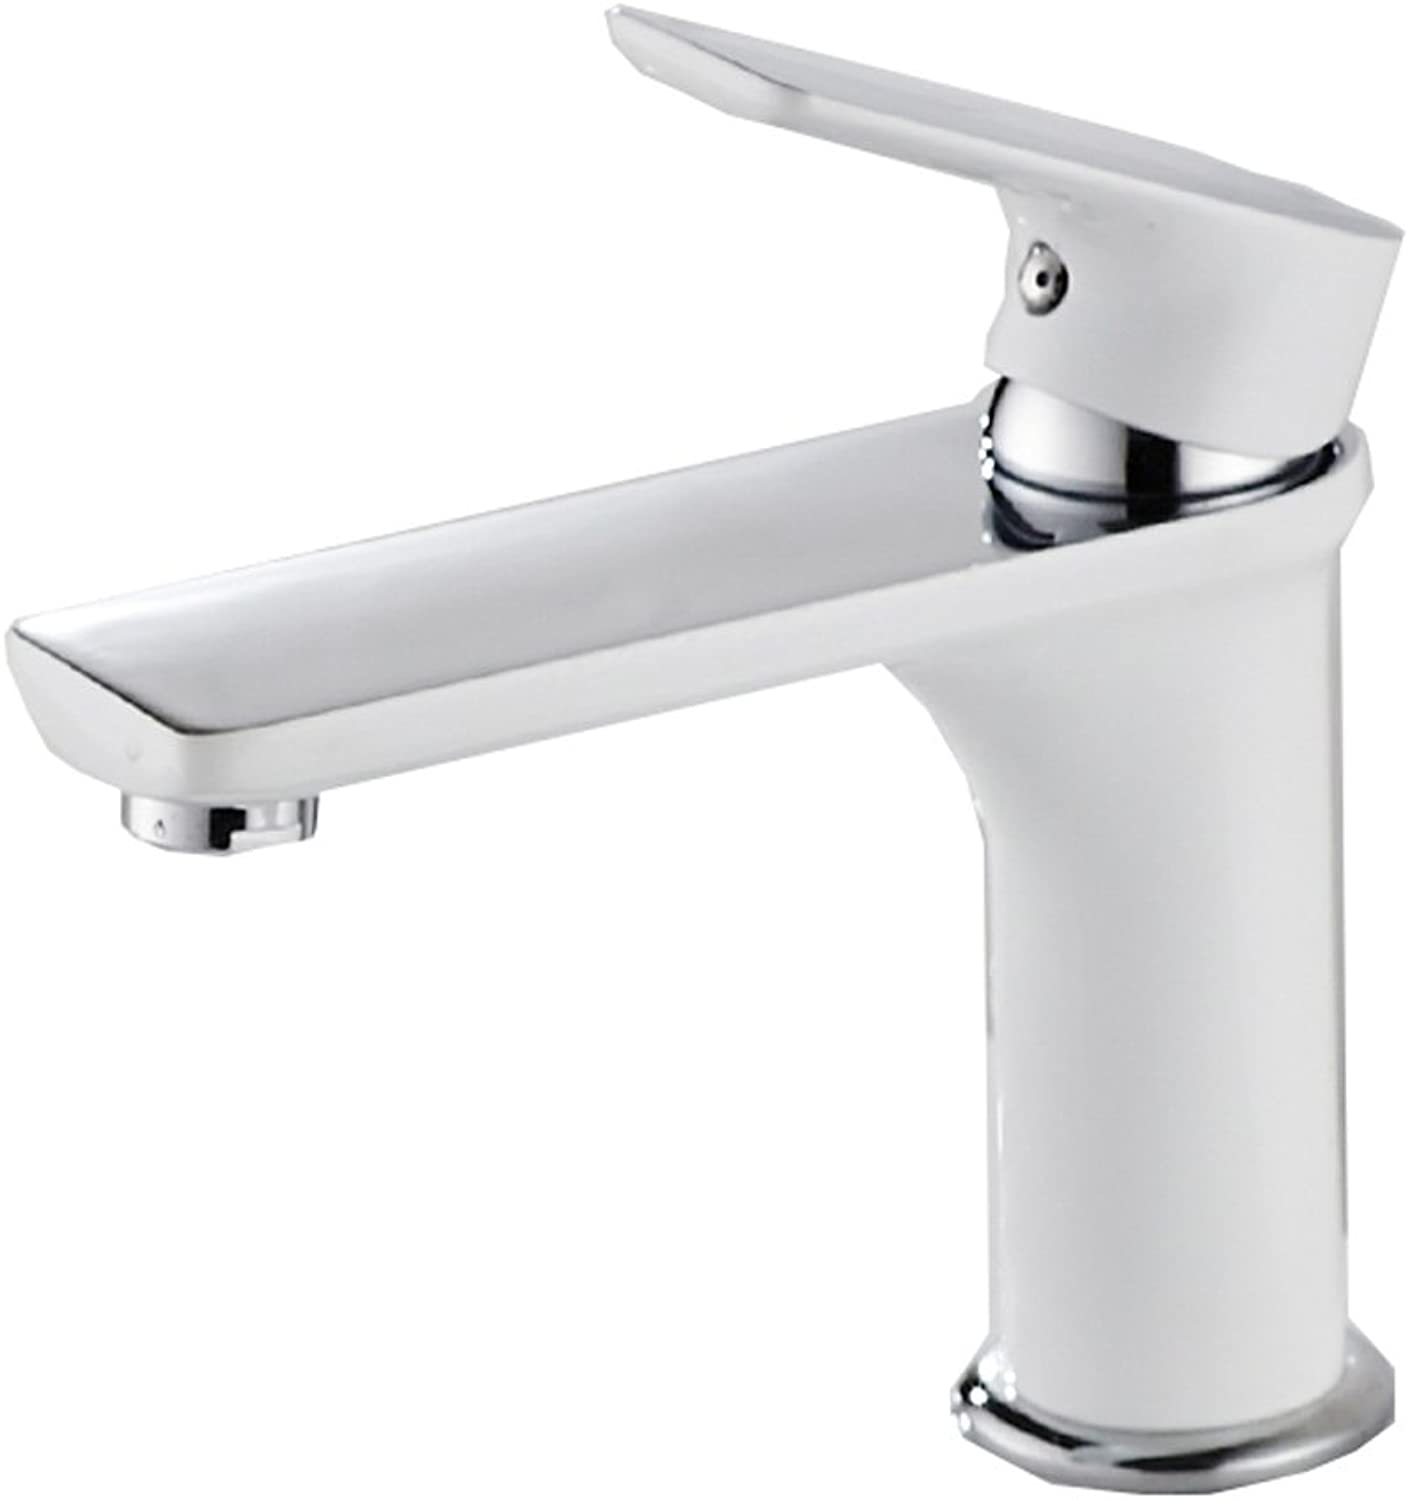 HAODAMAI Paint Black And White Electroplated Copper Faucet Single Hole Hot And Cold Basin Bathroom Hand-washing Aperture 32mm To 40mm Can Be Installed (color   Roasted white paint plating)